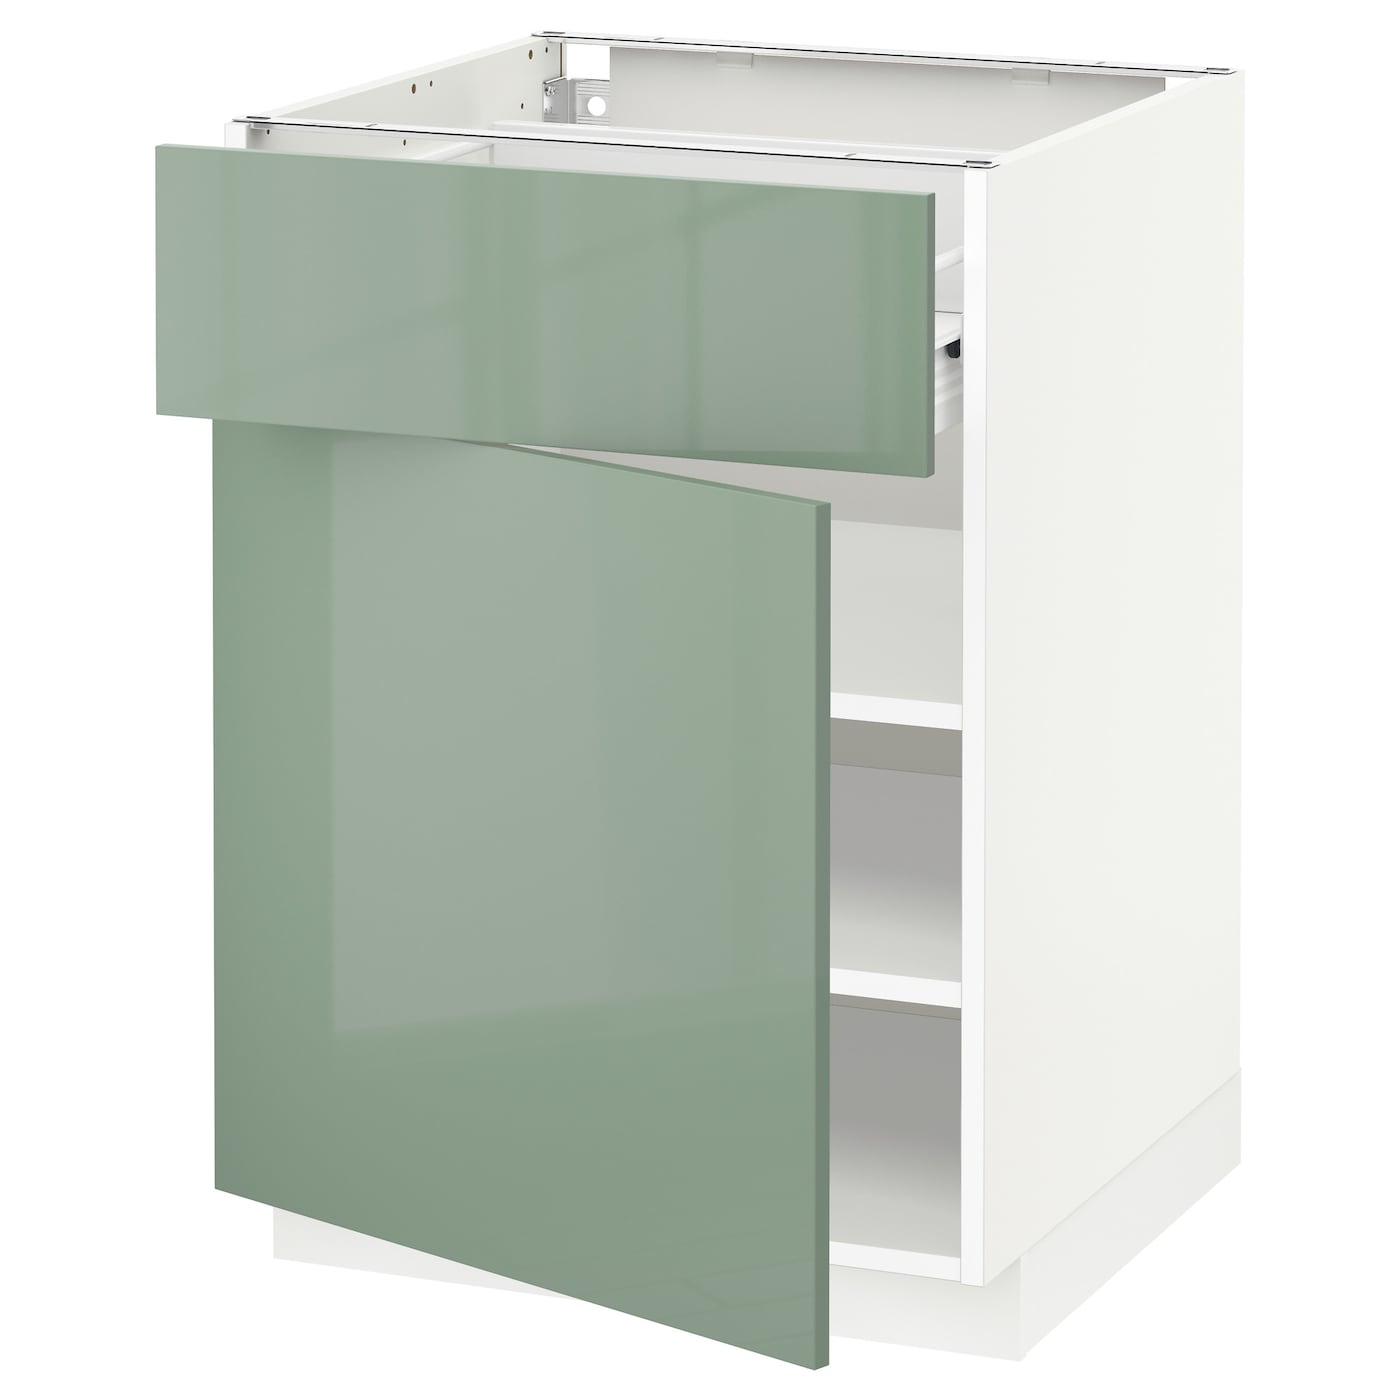 Metod f rvara base cabinet with drawer door white kallarp Kitchen cabinets light green